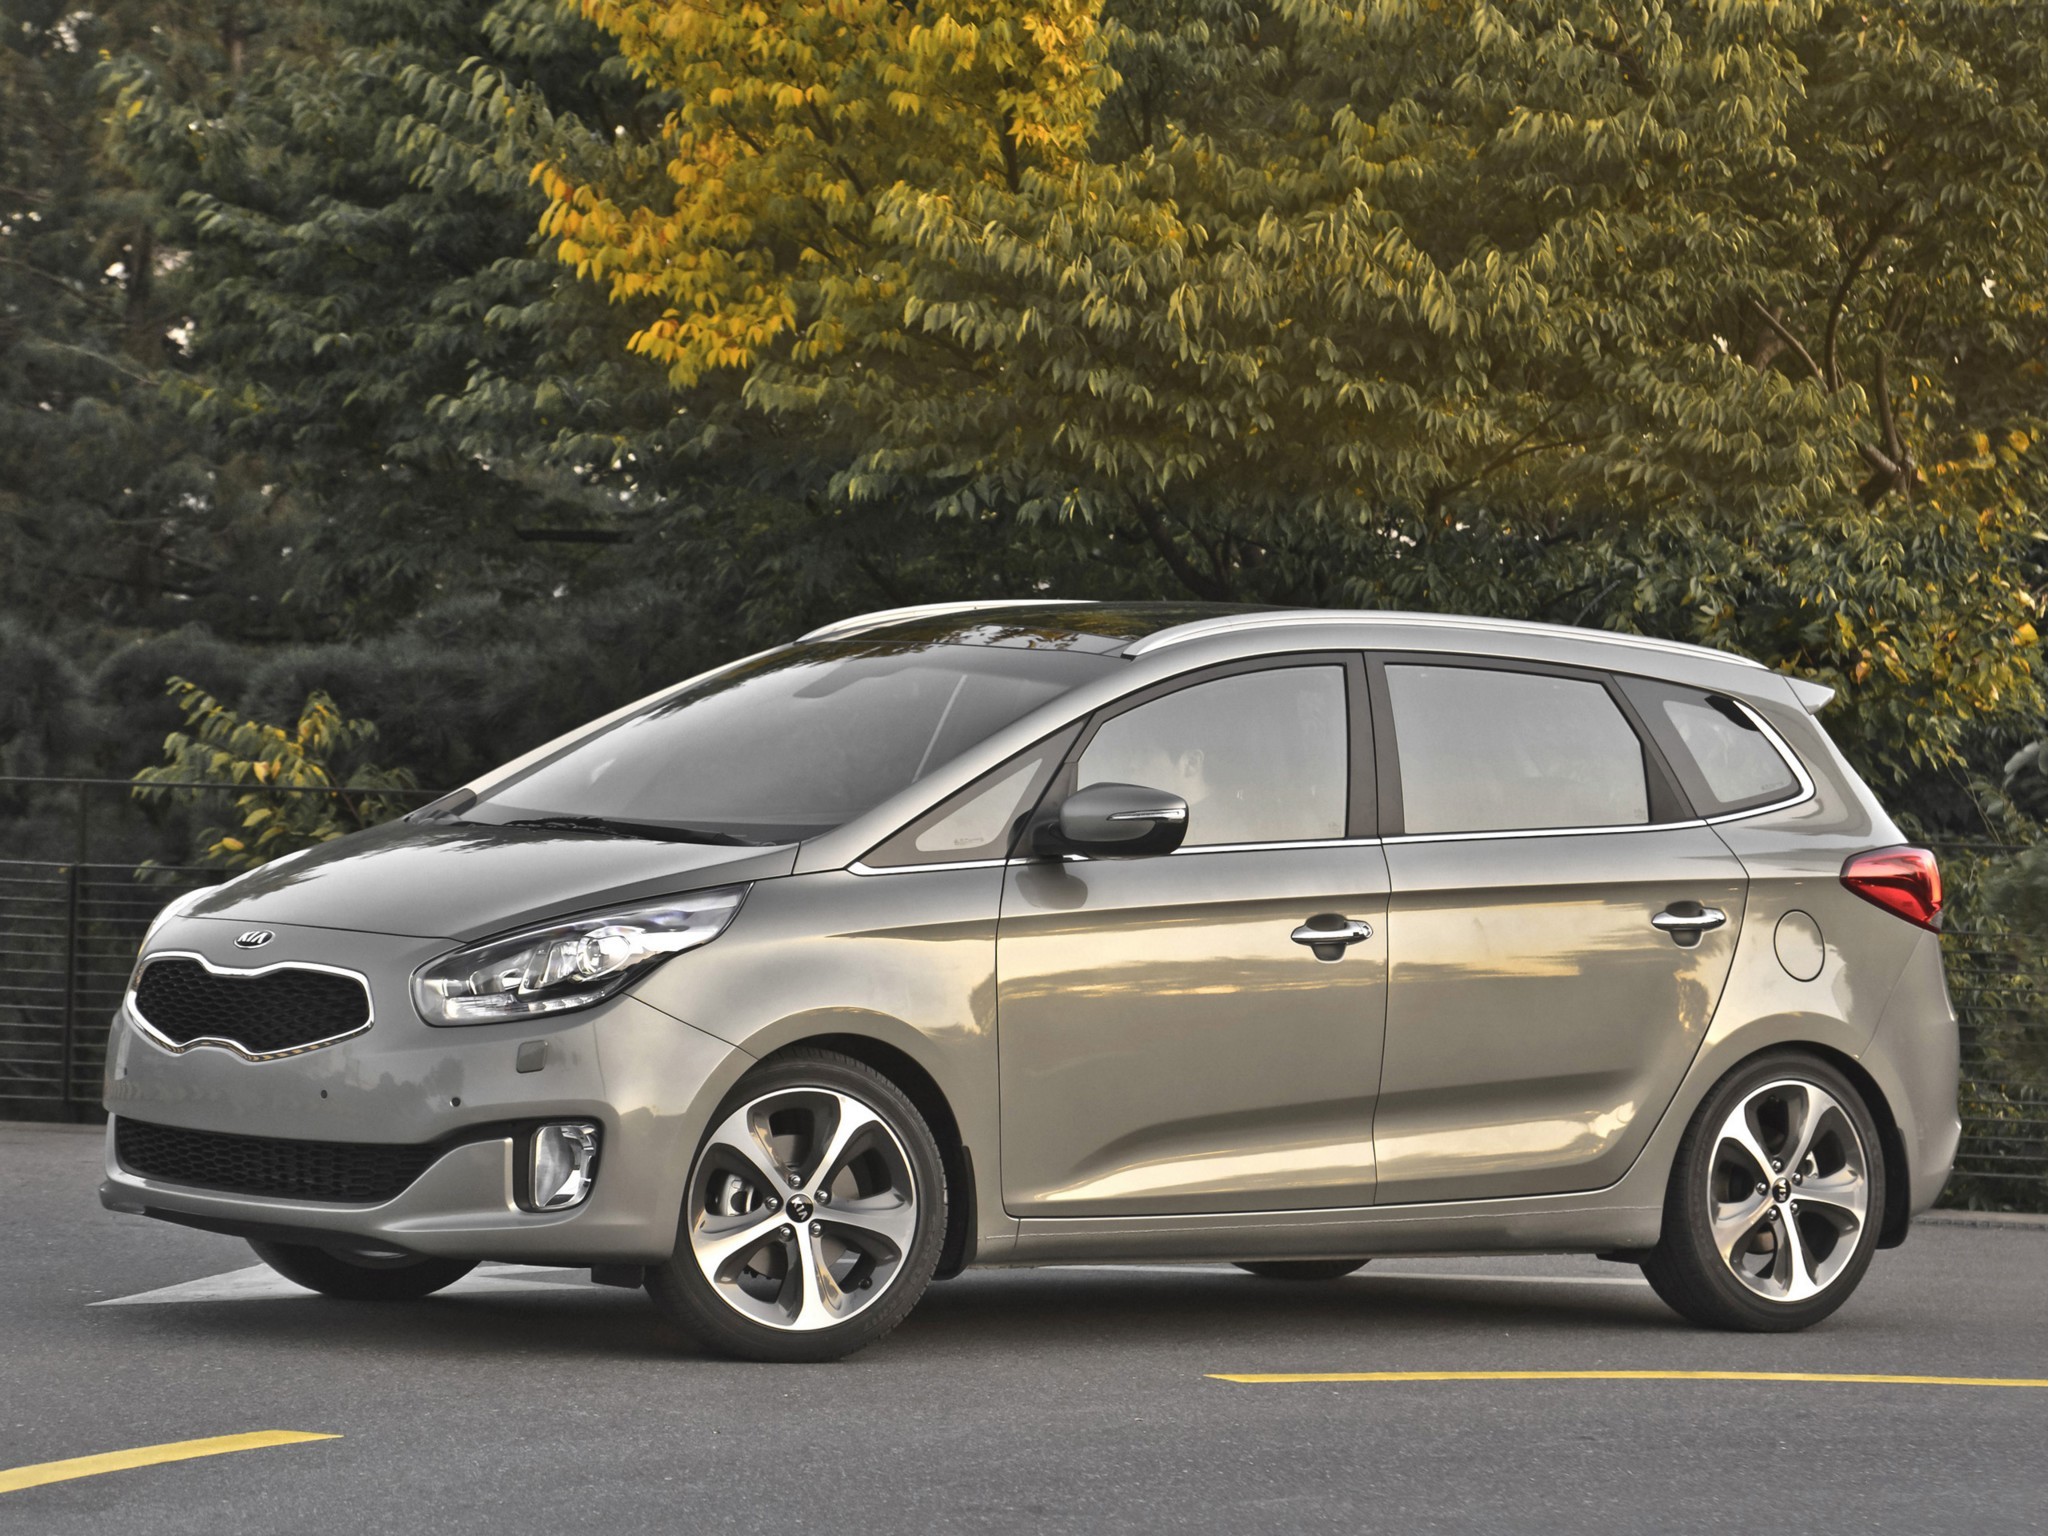 Kia Ceed Engine >> KIA Rondo specs & photos - 2013, 2014, 2015, 2016, 2017, 2018 - autoevolution